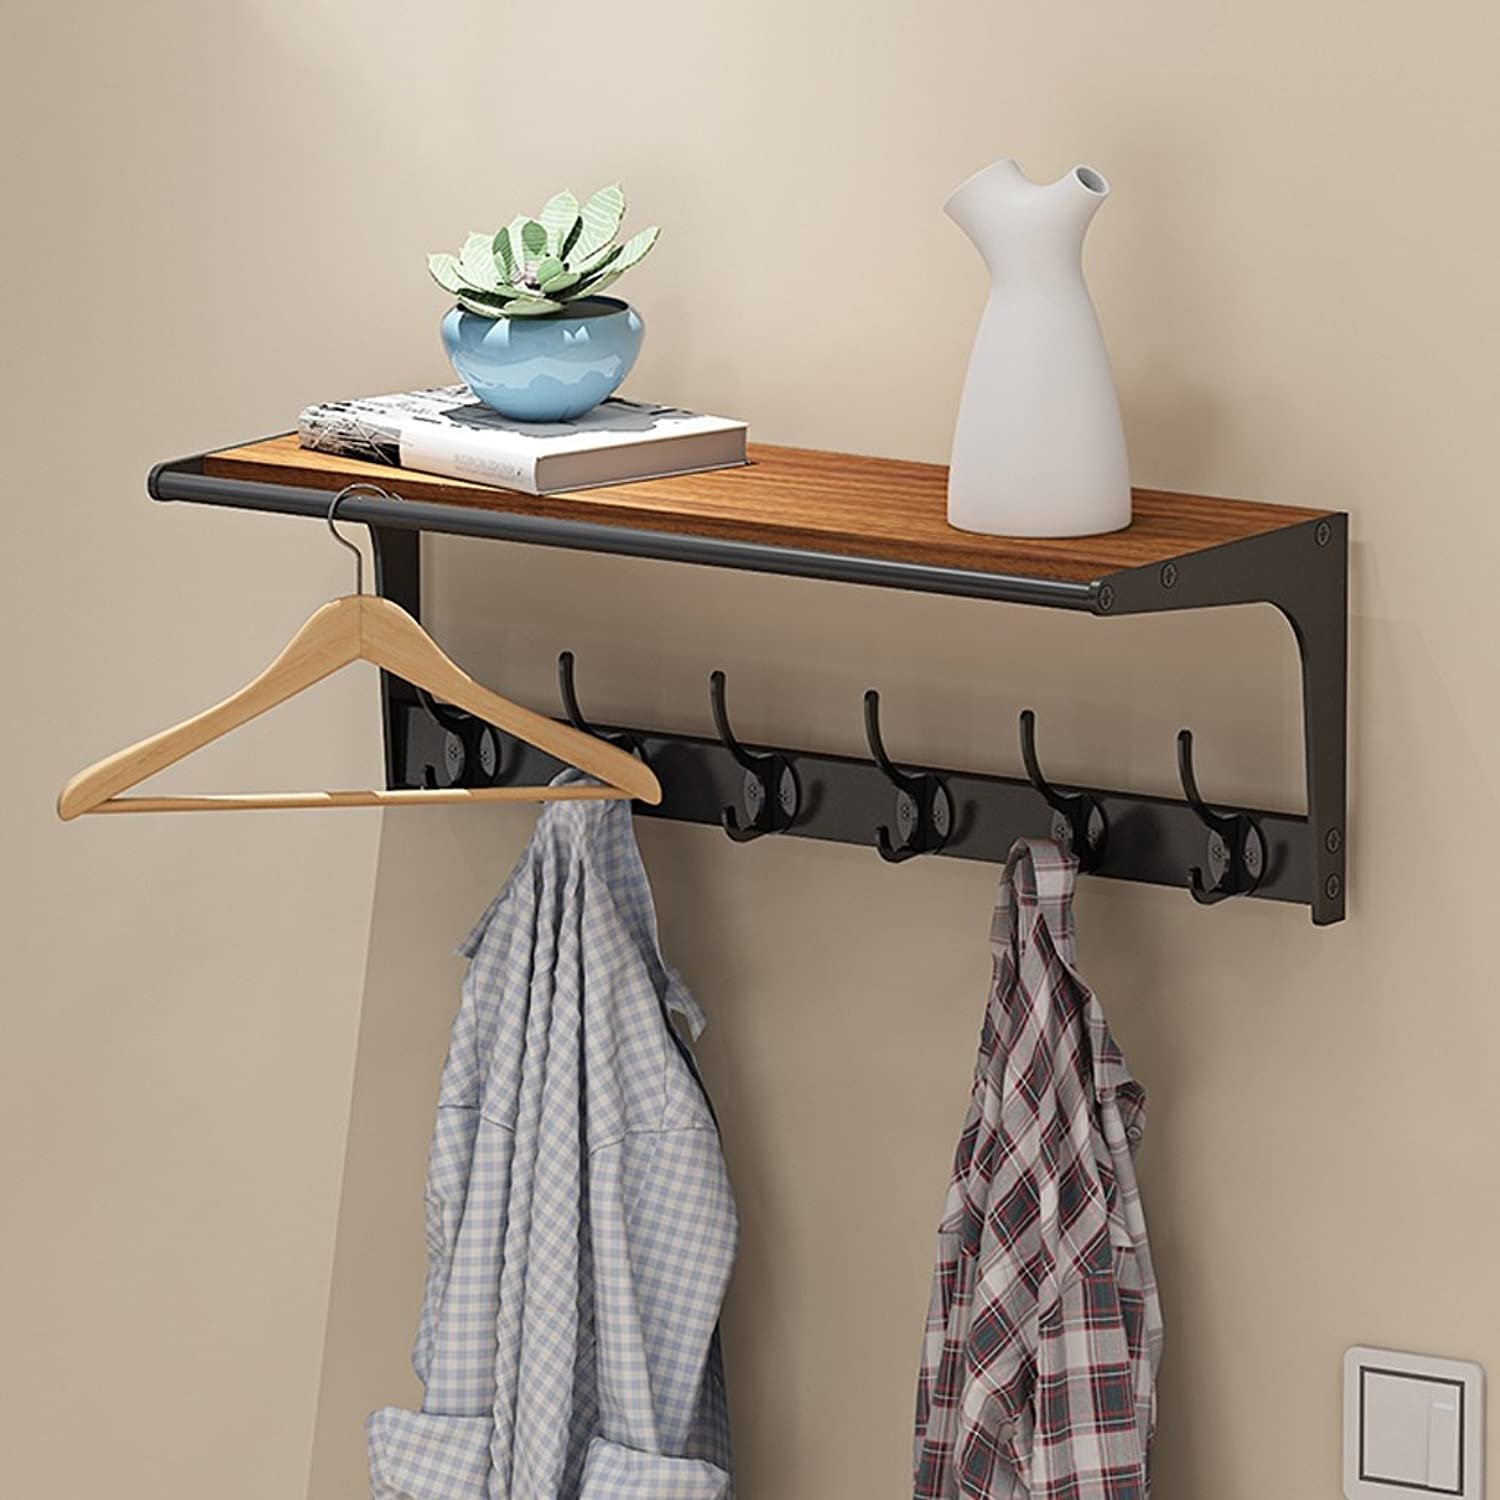 TIANTA- Multi-Functional Coat Rack Solid Wood Hooks Hangers Simple Modern Porch Wall Shelves (60.5  23.5  22CM) Home Furnishing (color   A)